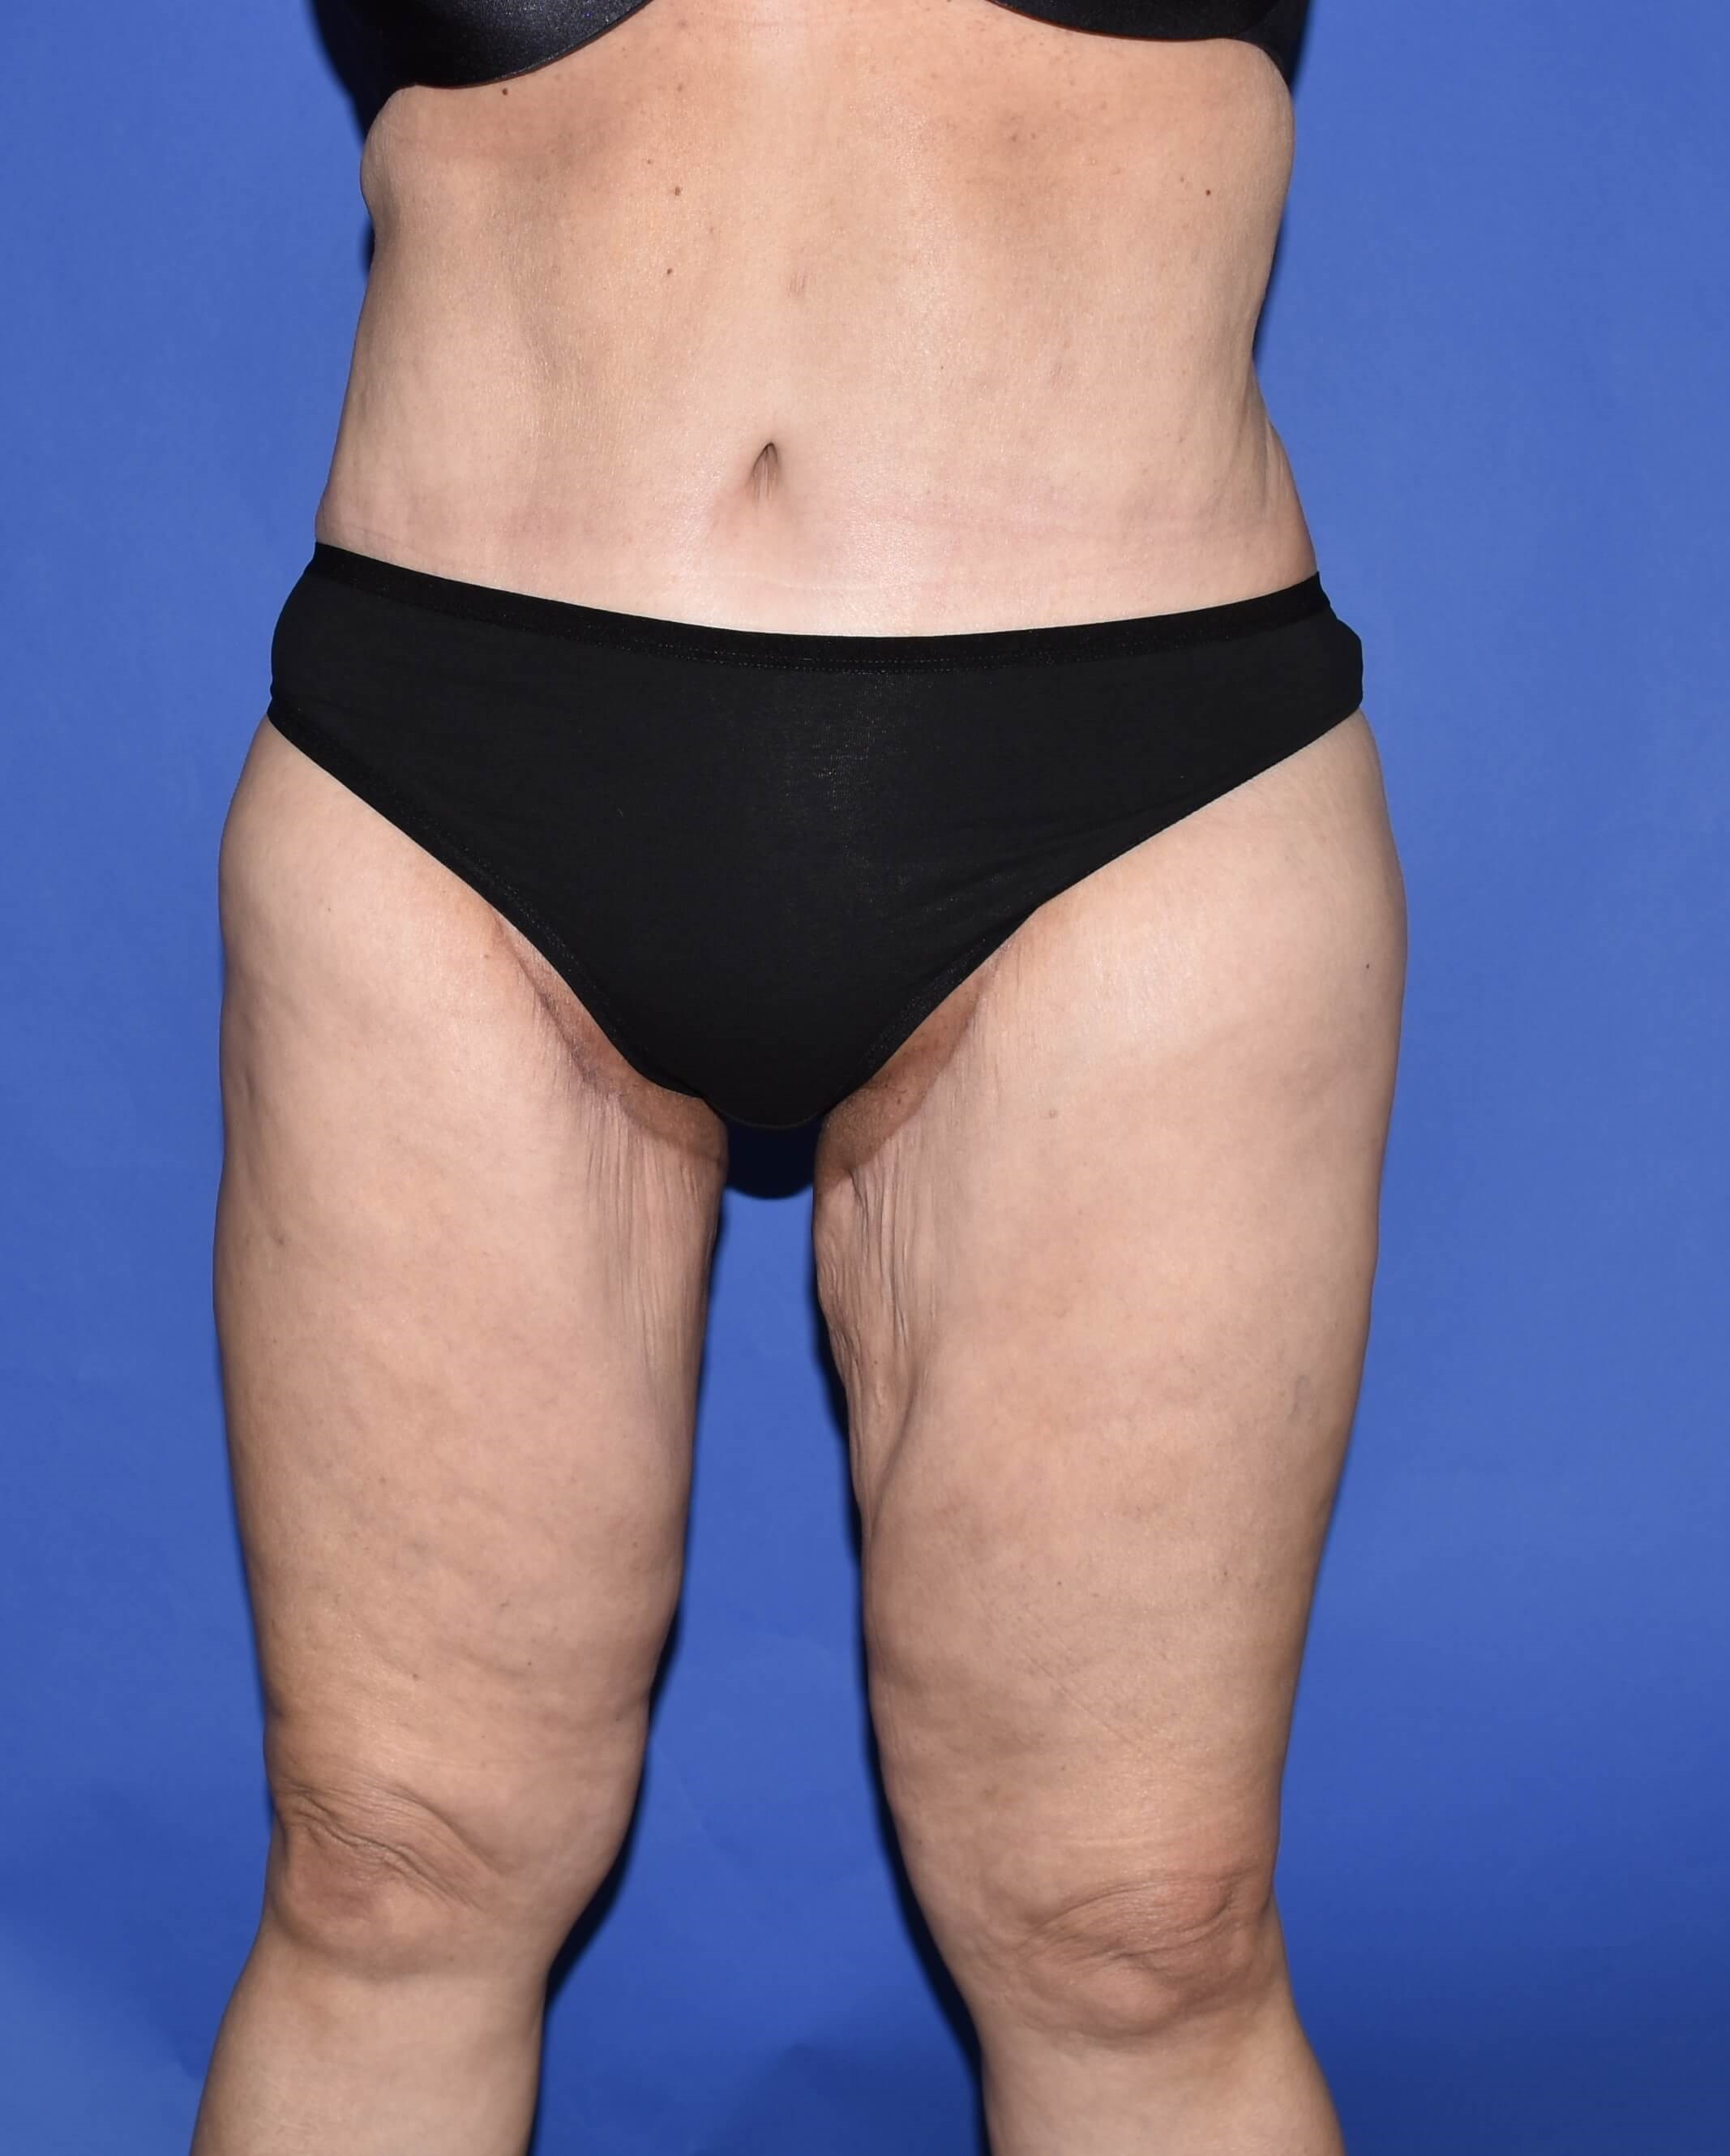 Post-Weight Loss Thigh Lift After